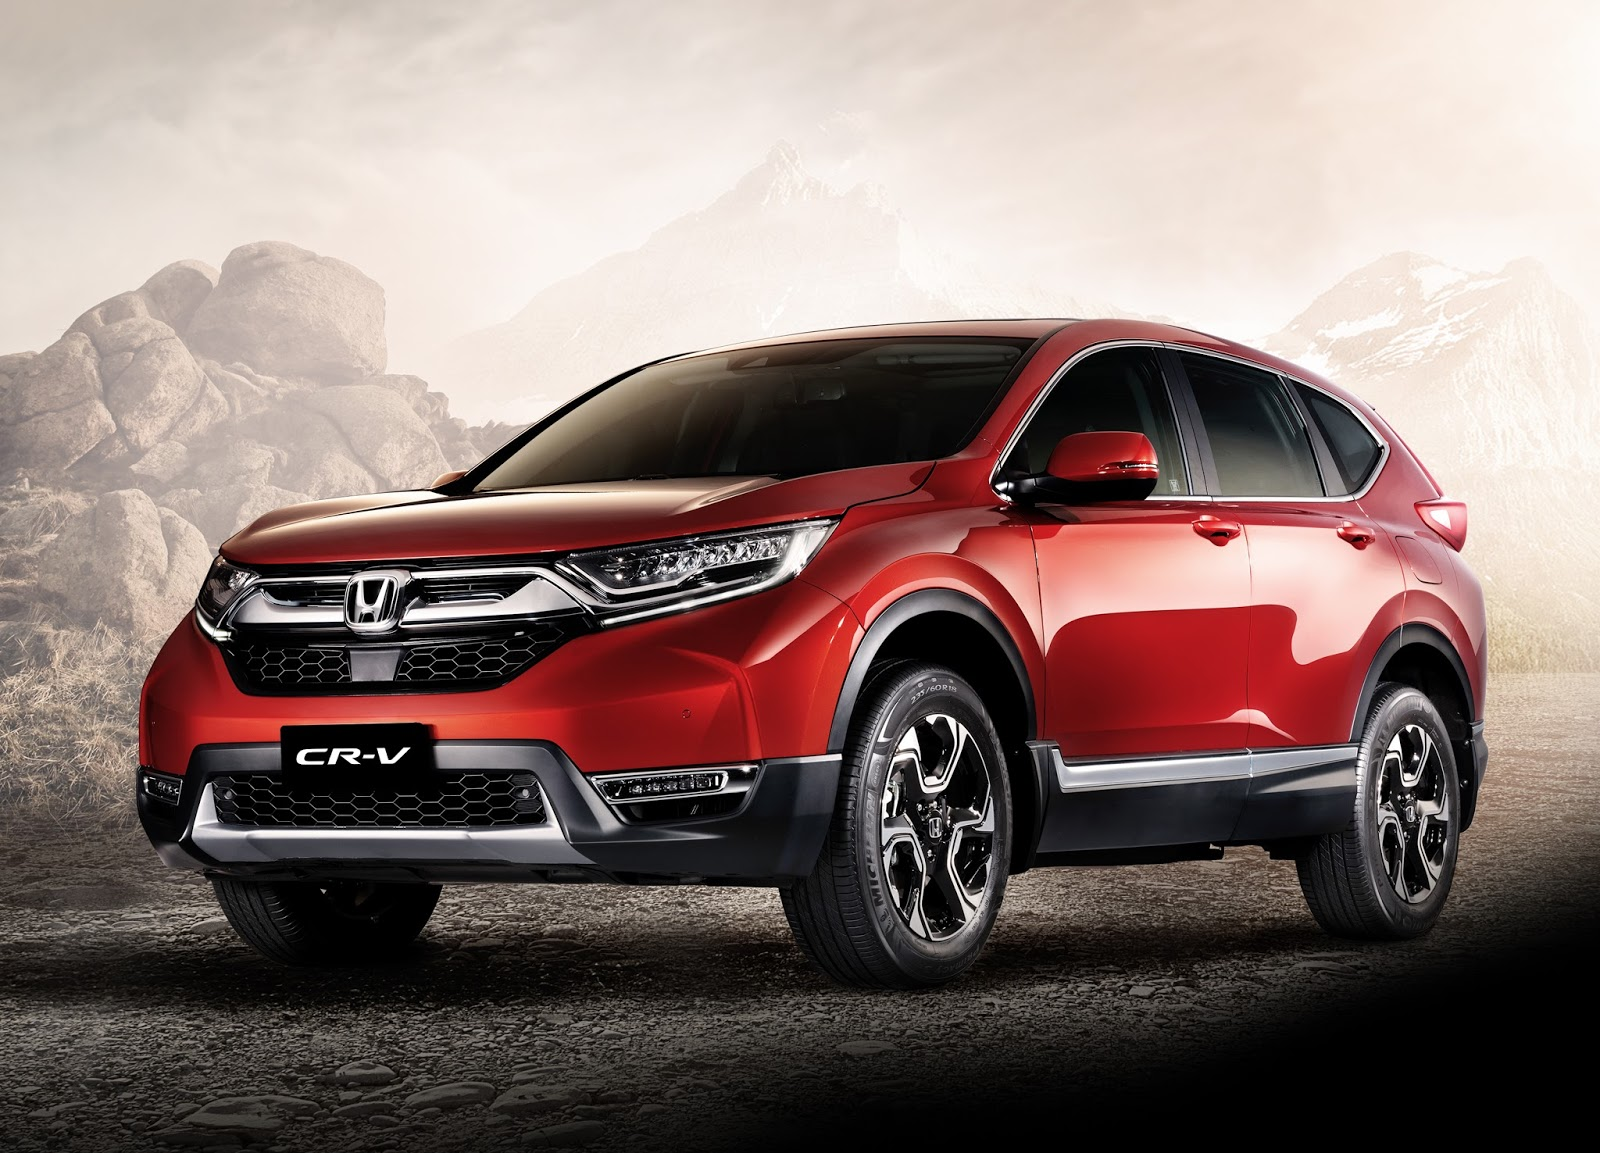 honda launches the all new 7 seater honda cr v 1 6l diesel turbo 9at awd beautiful life. Black Bedroom Furniture Sets. Home Design Ideas